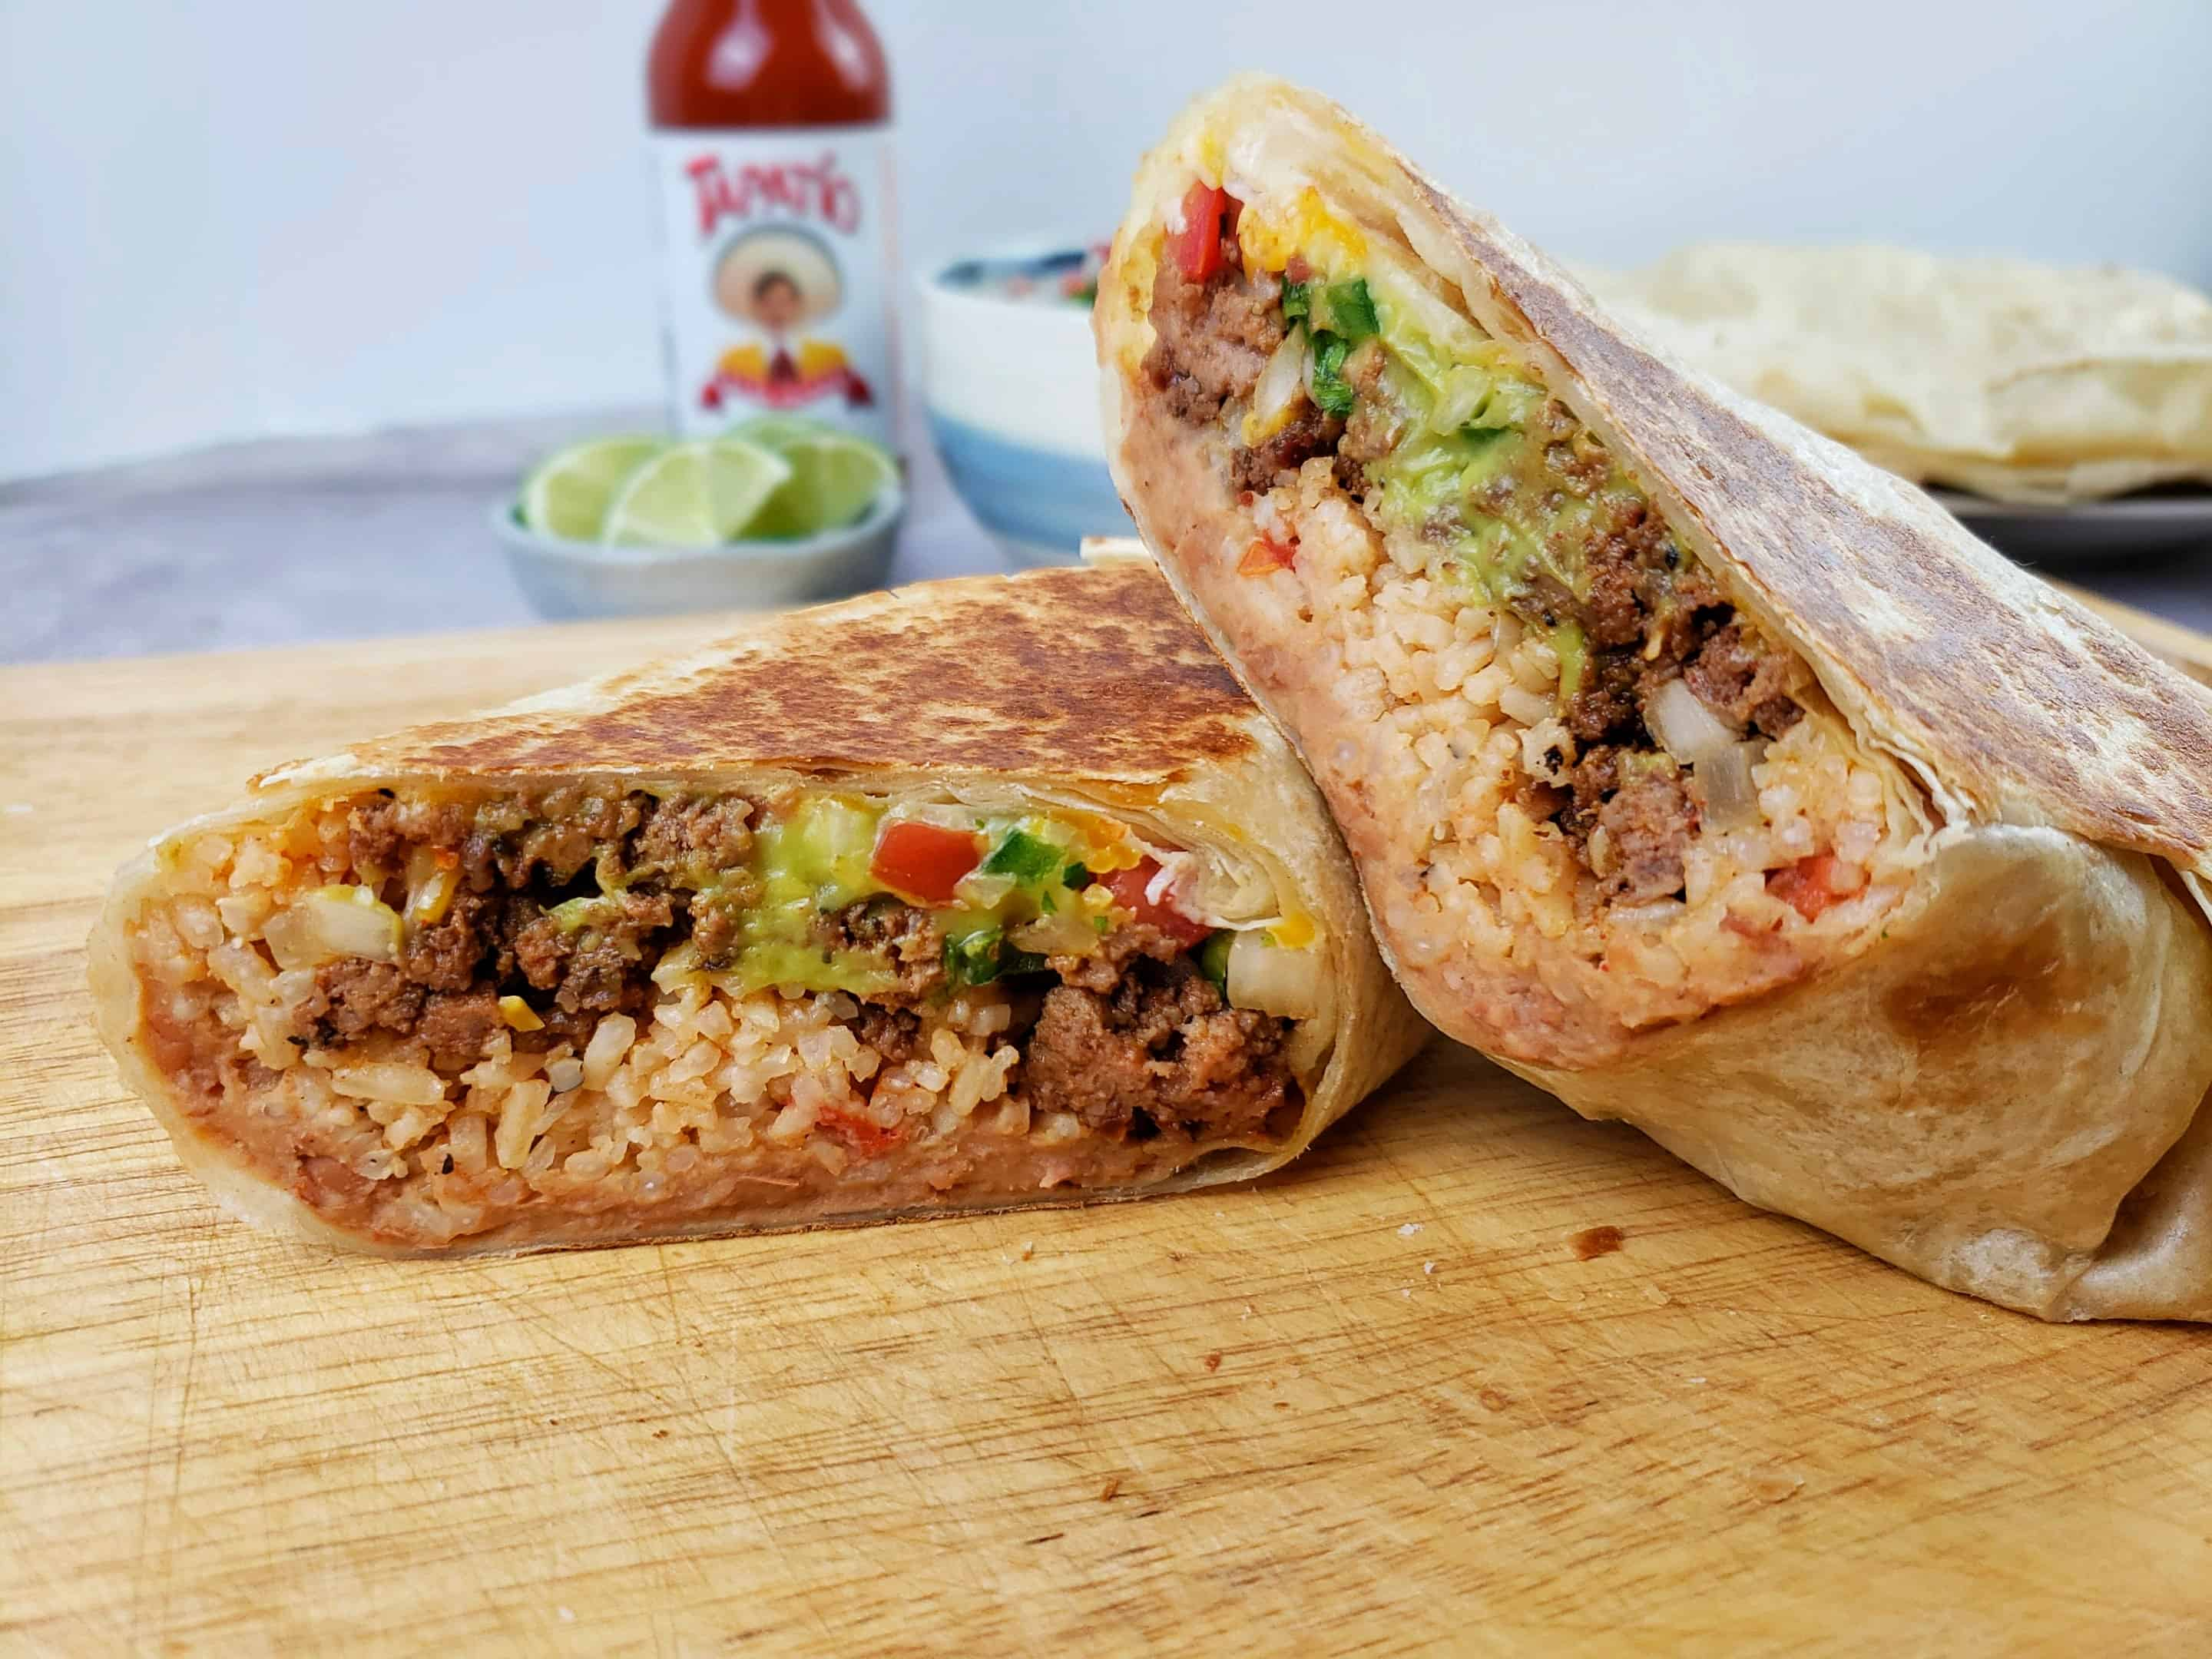 XXL Grilled Stuft Burrito